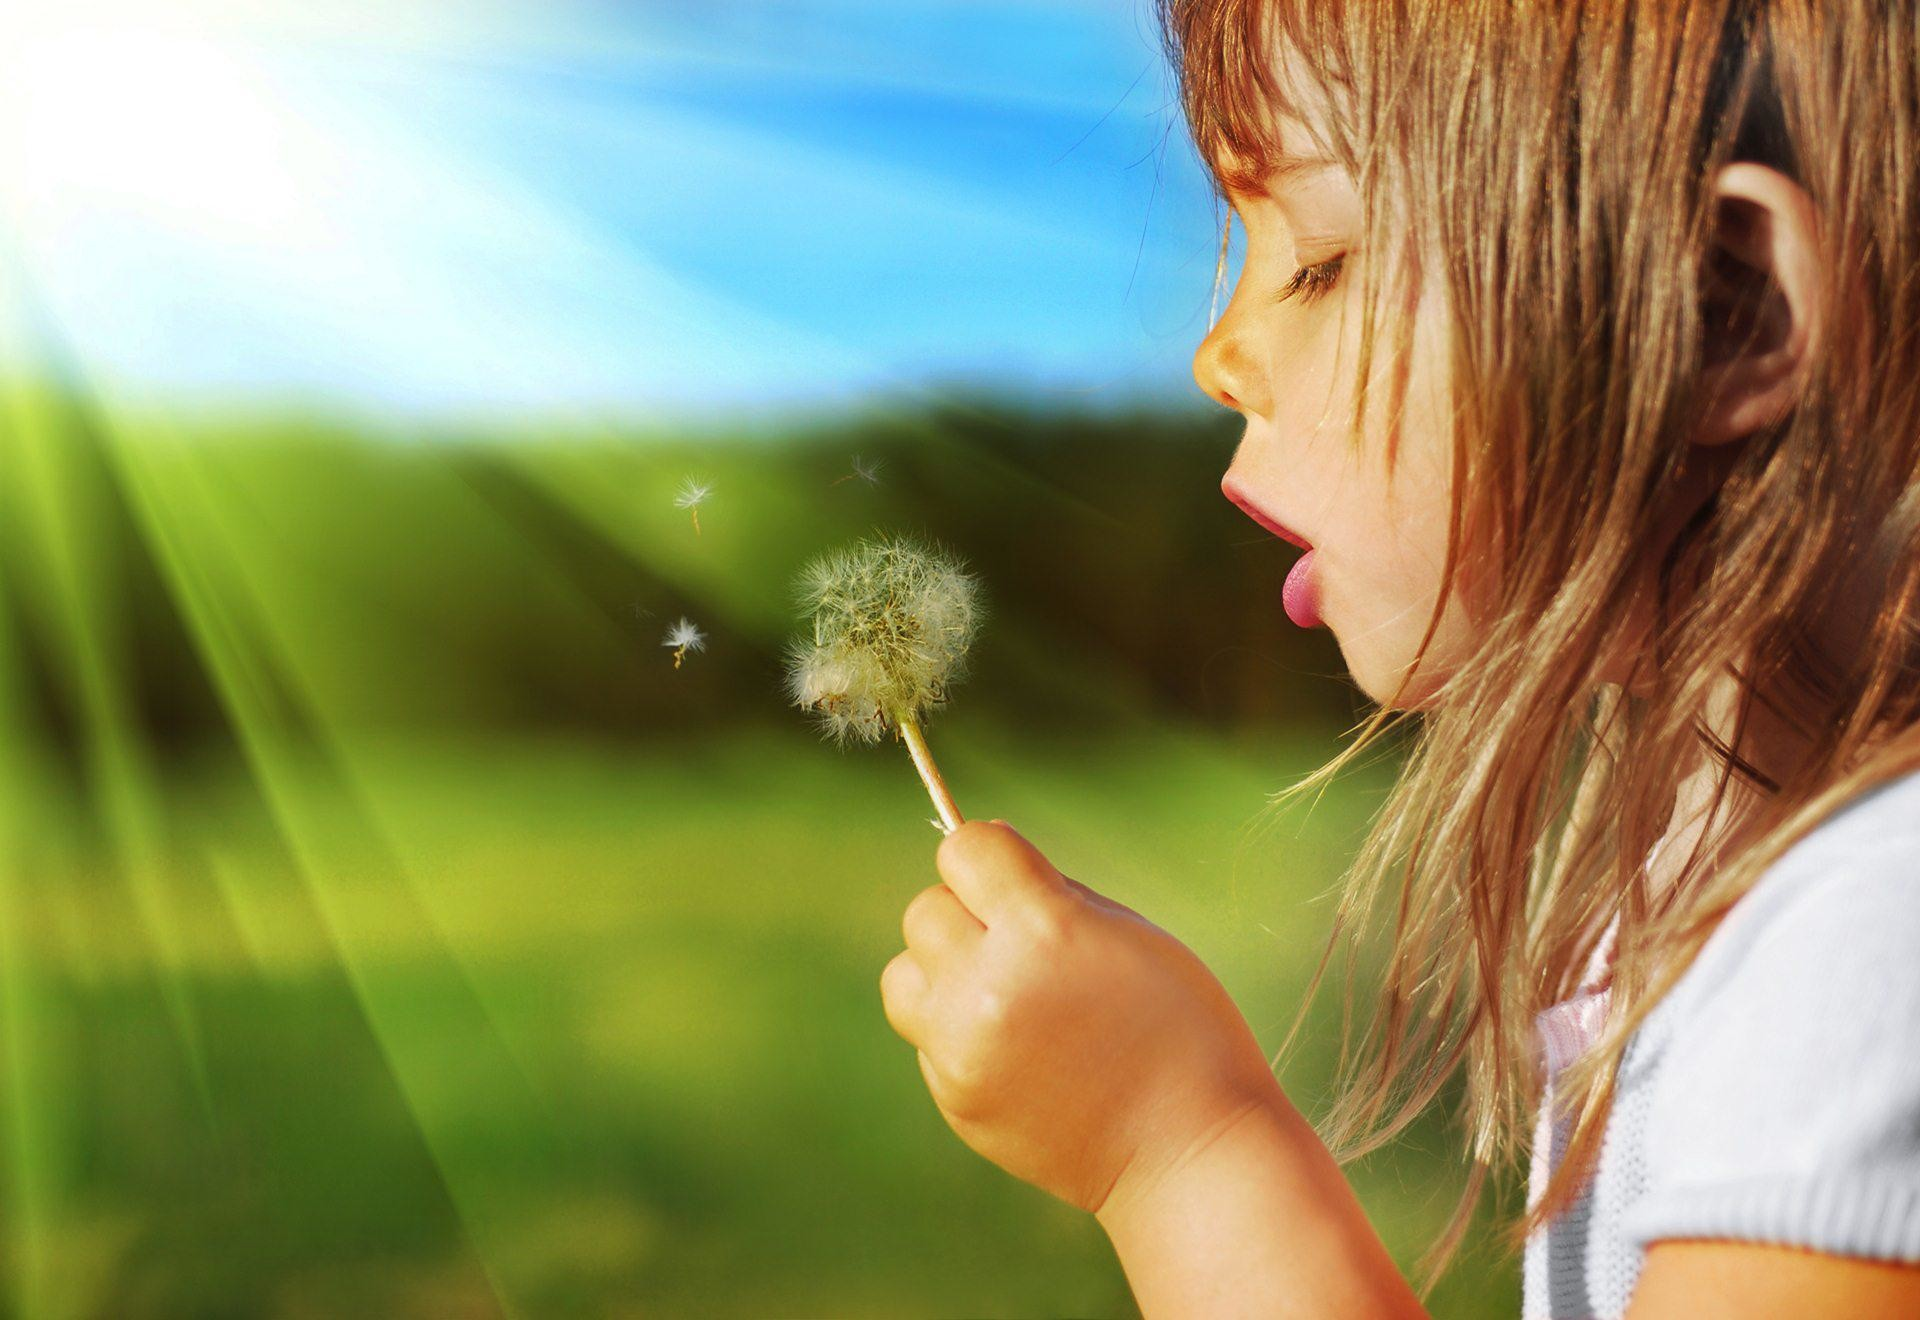 Res: 1920x1320, Sweet Child Girl Blowing Dandelion Plant